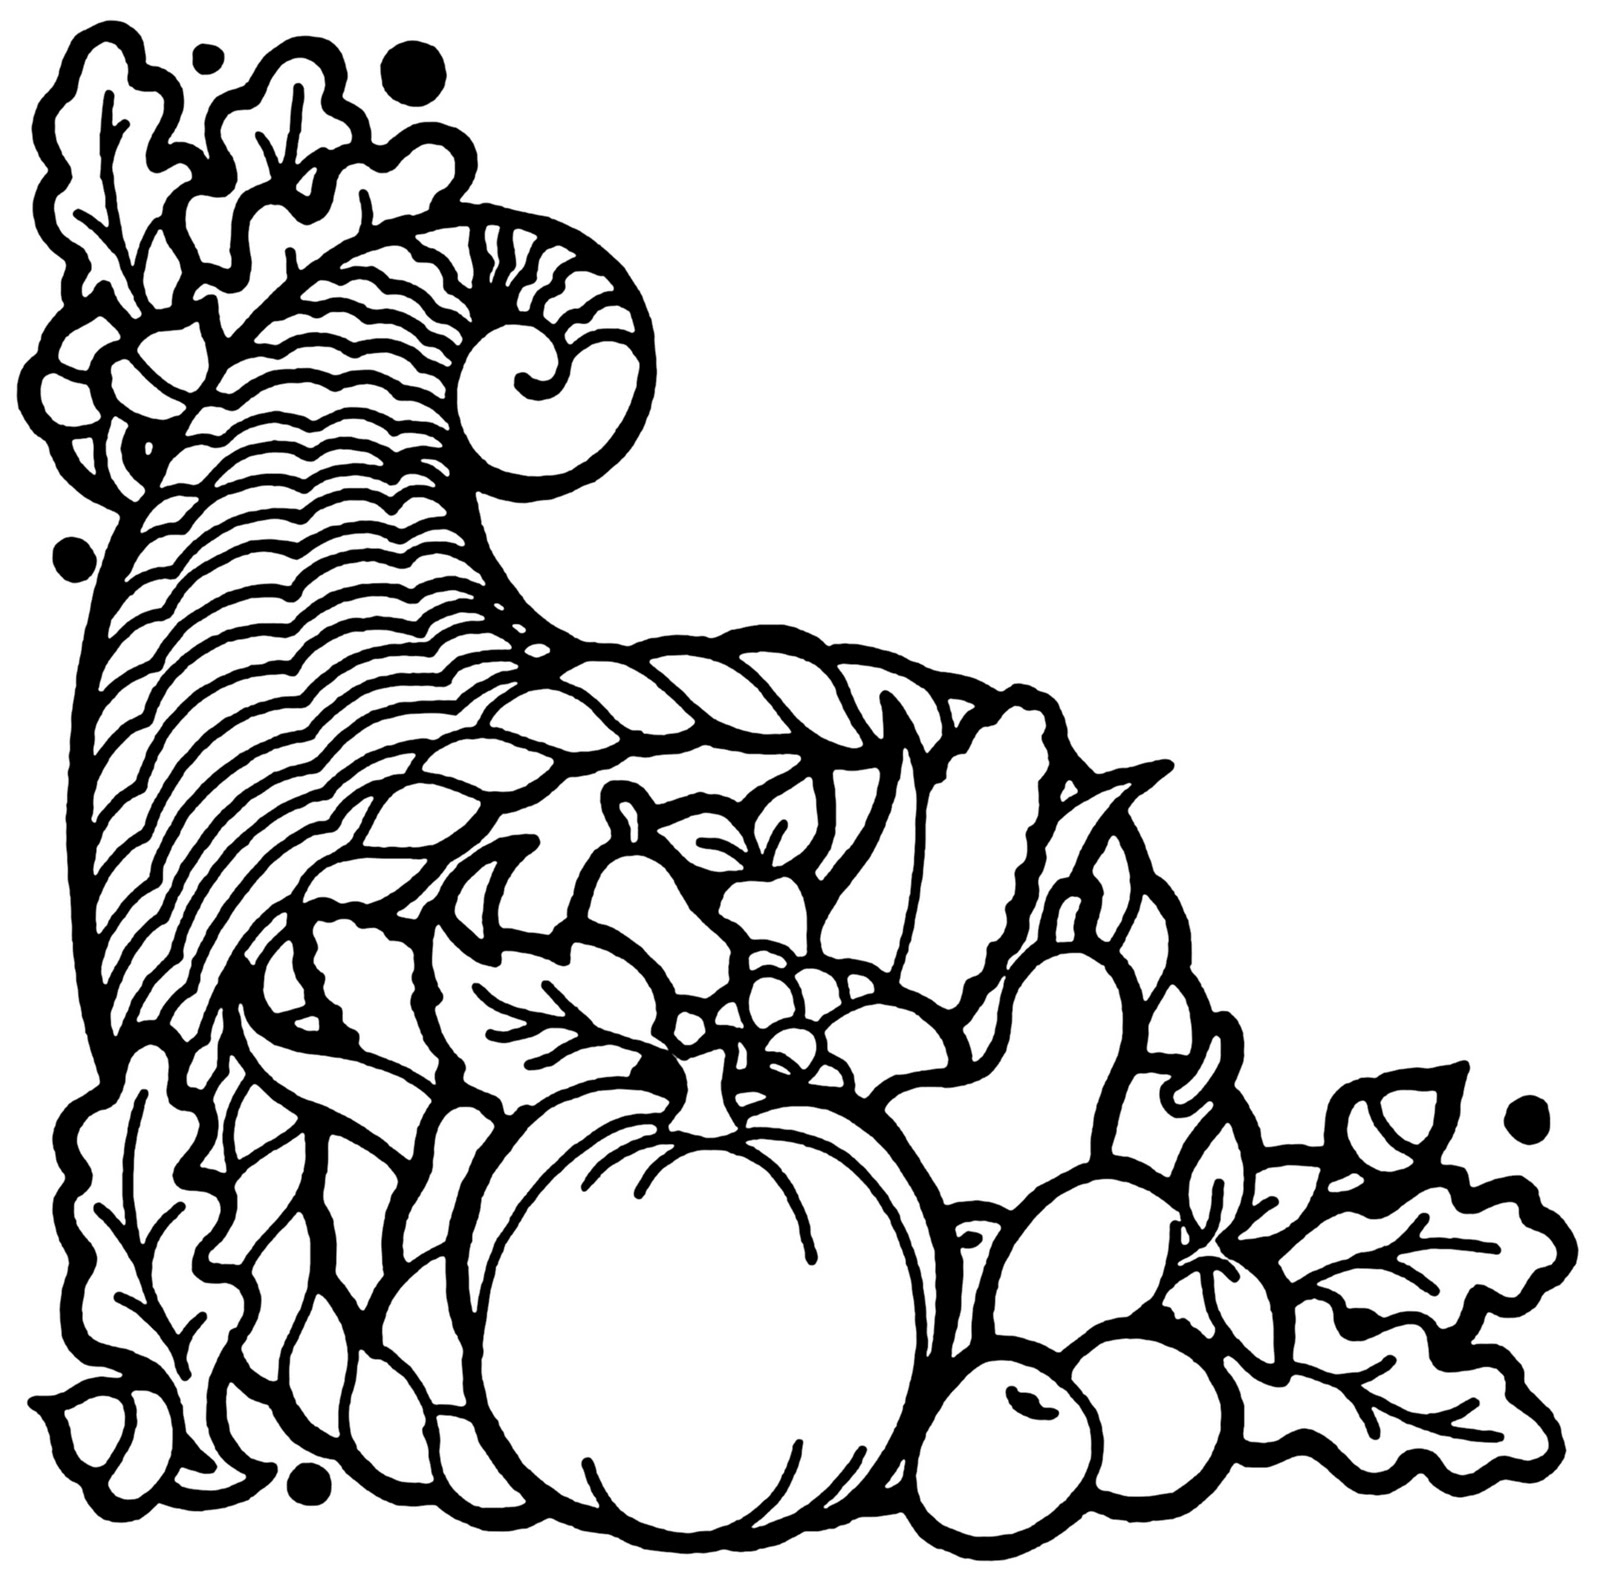 Horn of plenty clipart black and white png freeuse Cornucopia Clipart | Free download best Cornucopia Clipart ... png freeuse